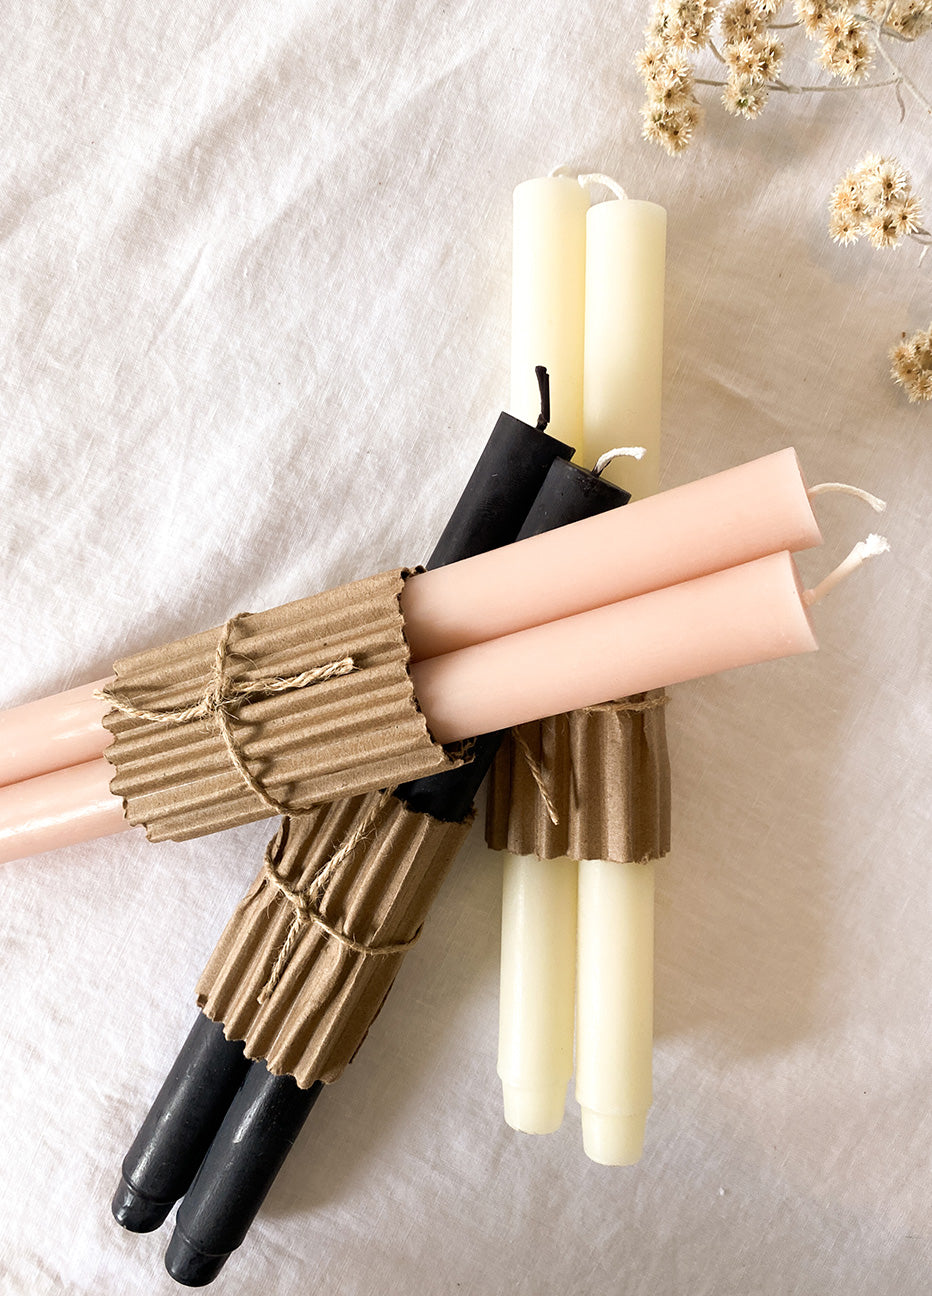 Greentree Church Taper Candles